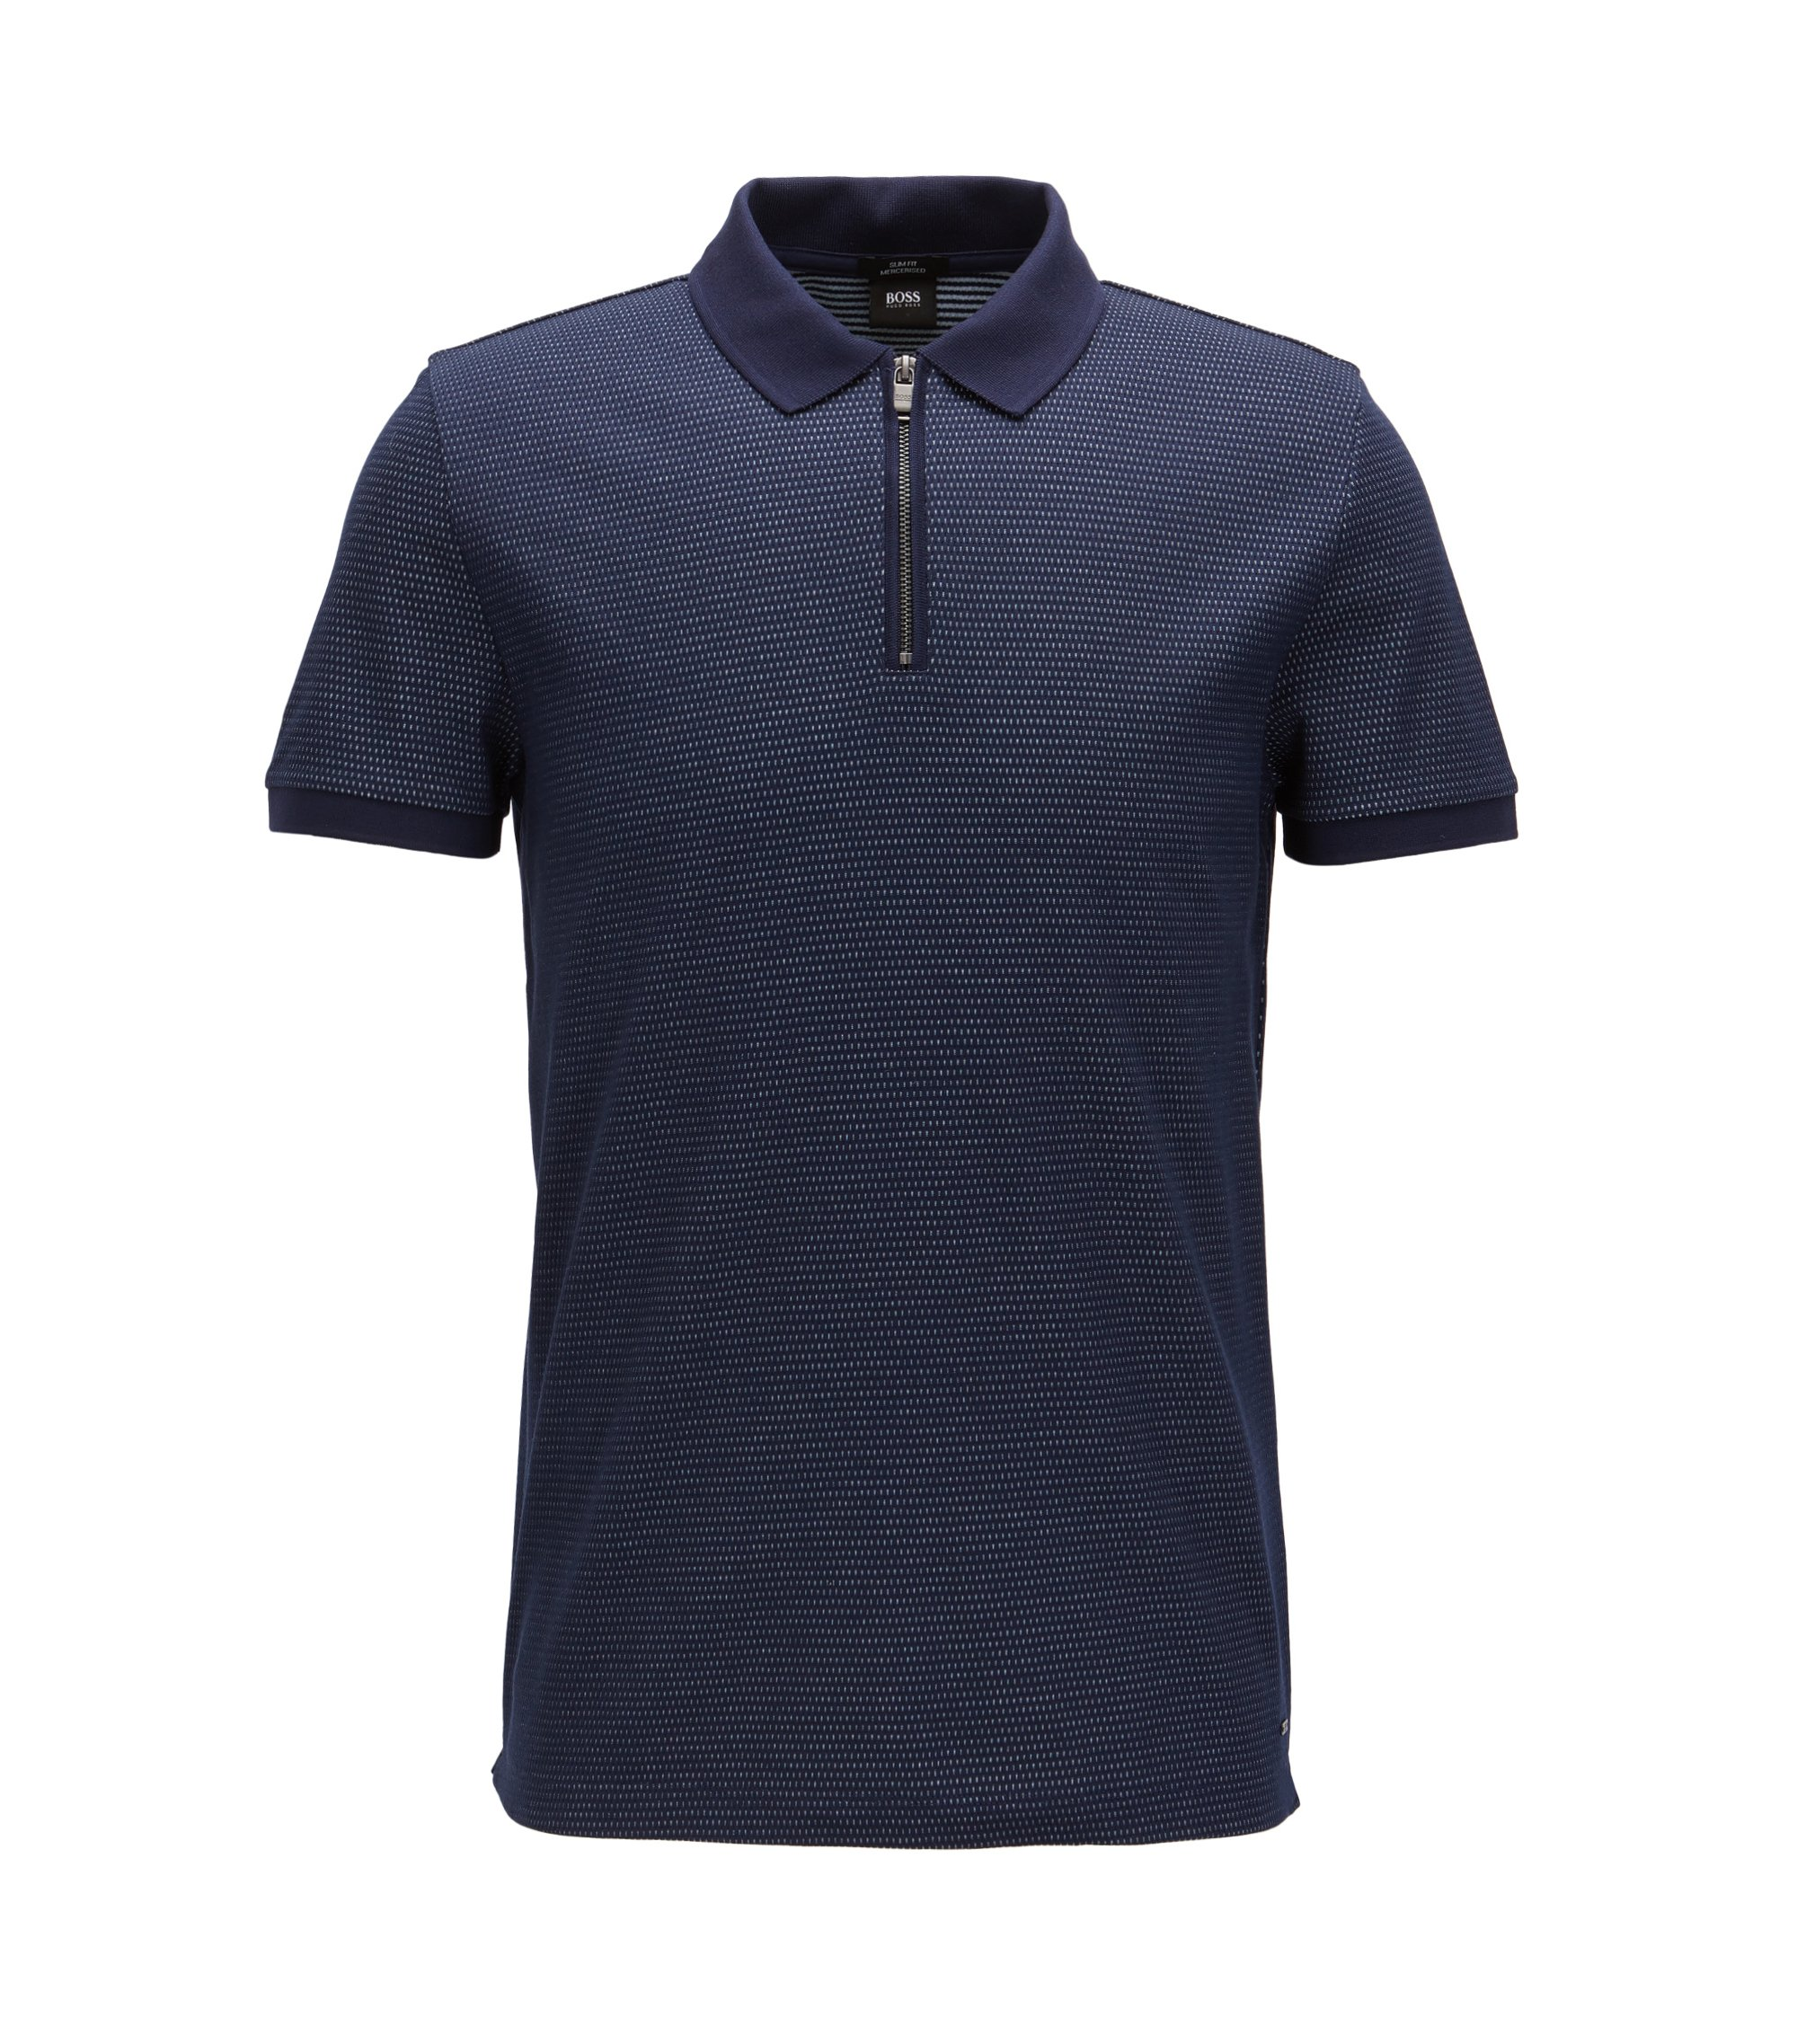 Patterned Cotton Polo Shirt, Slim Fit | Polston, Dark Blue